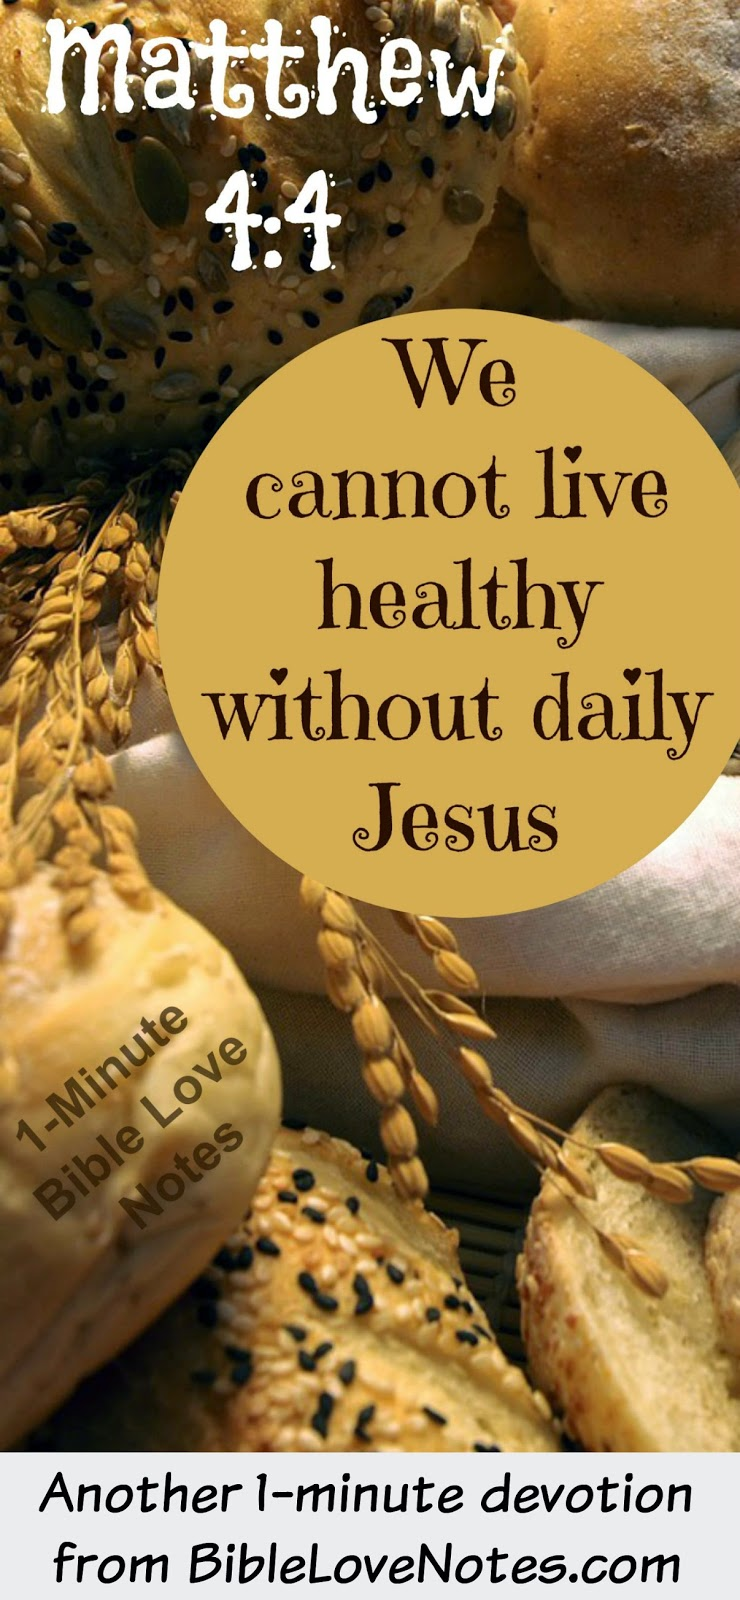 Daily Bread, Matthew 4:4, Man does not live by bread alone, we need Jesus like our daily bread